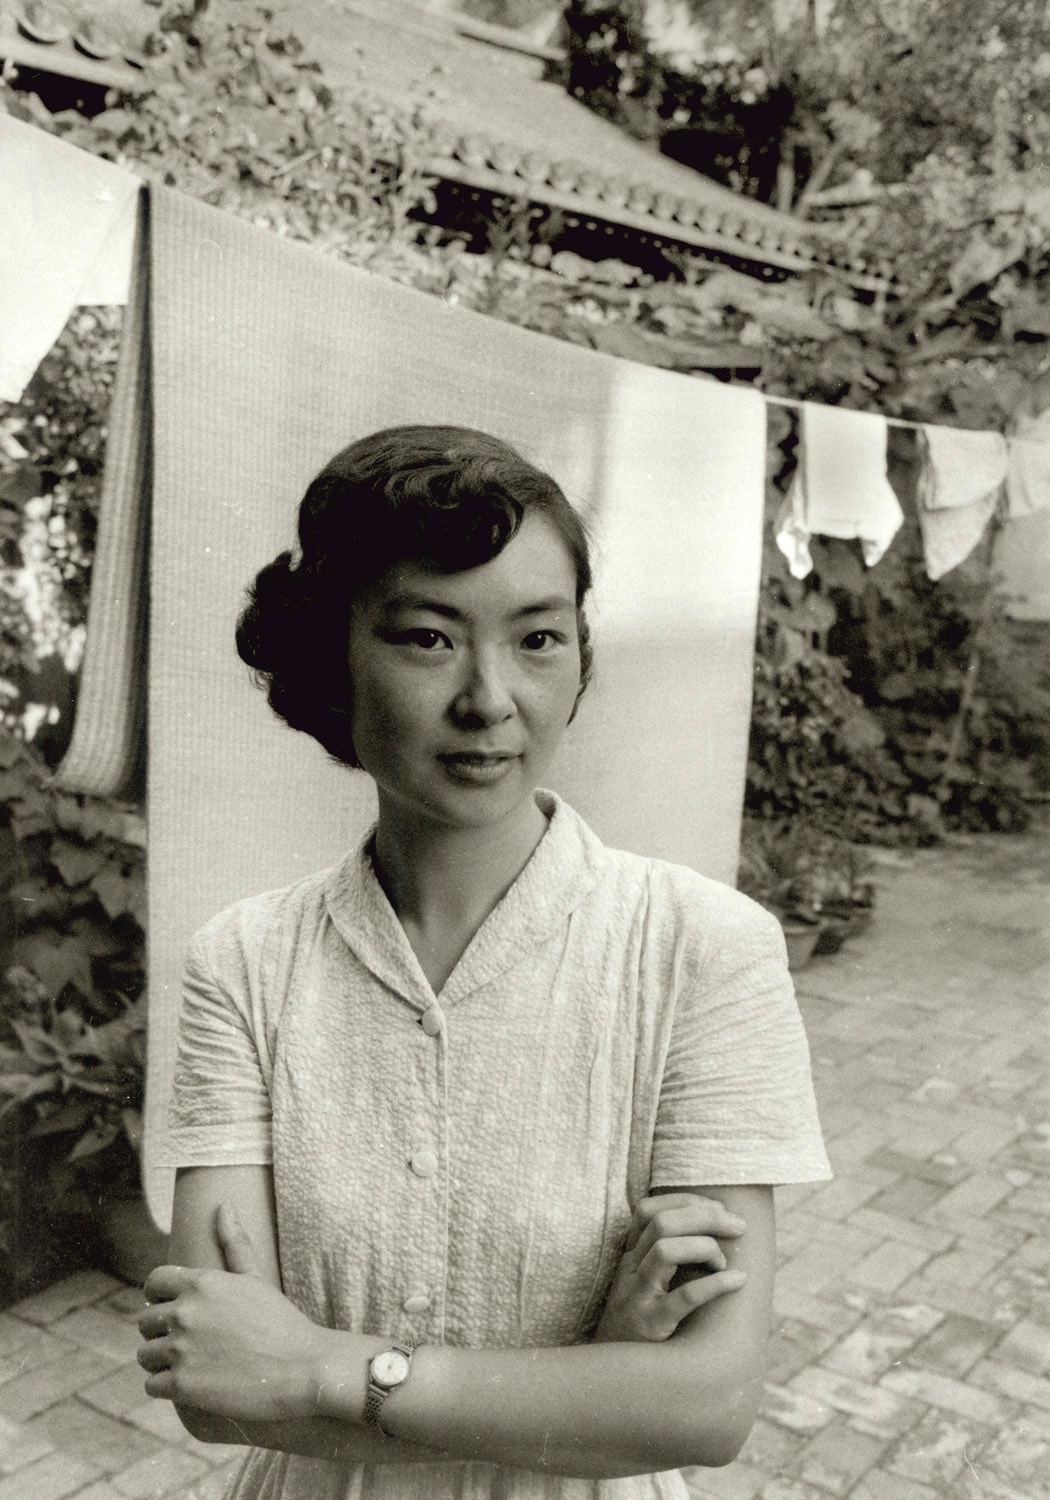 Wife of a music composer at their home in Peking. China, 1956. (RDH C017-24)